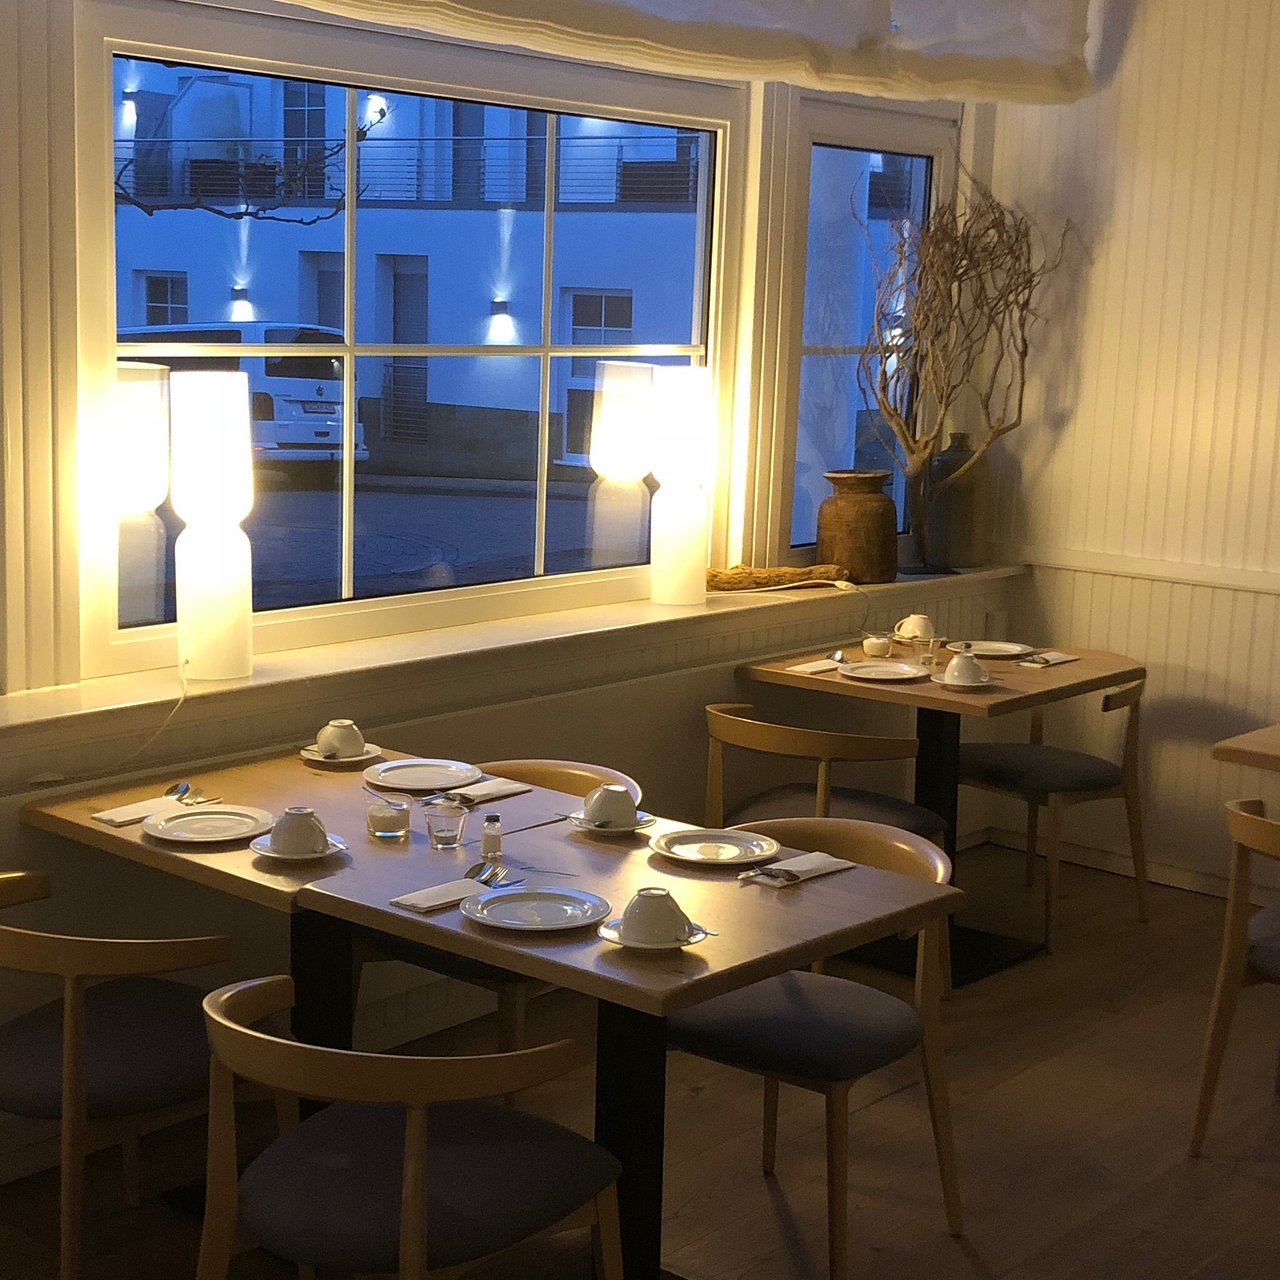 Restaurant Am Kamin Norderney Hotel Aquamarin Prices Reviews Norderney Germany Tripadvisor